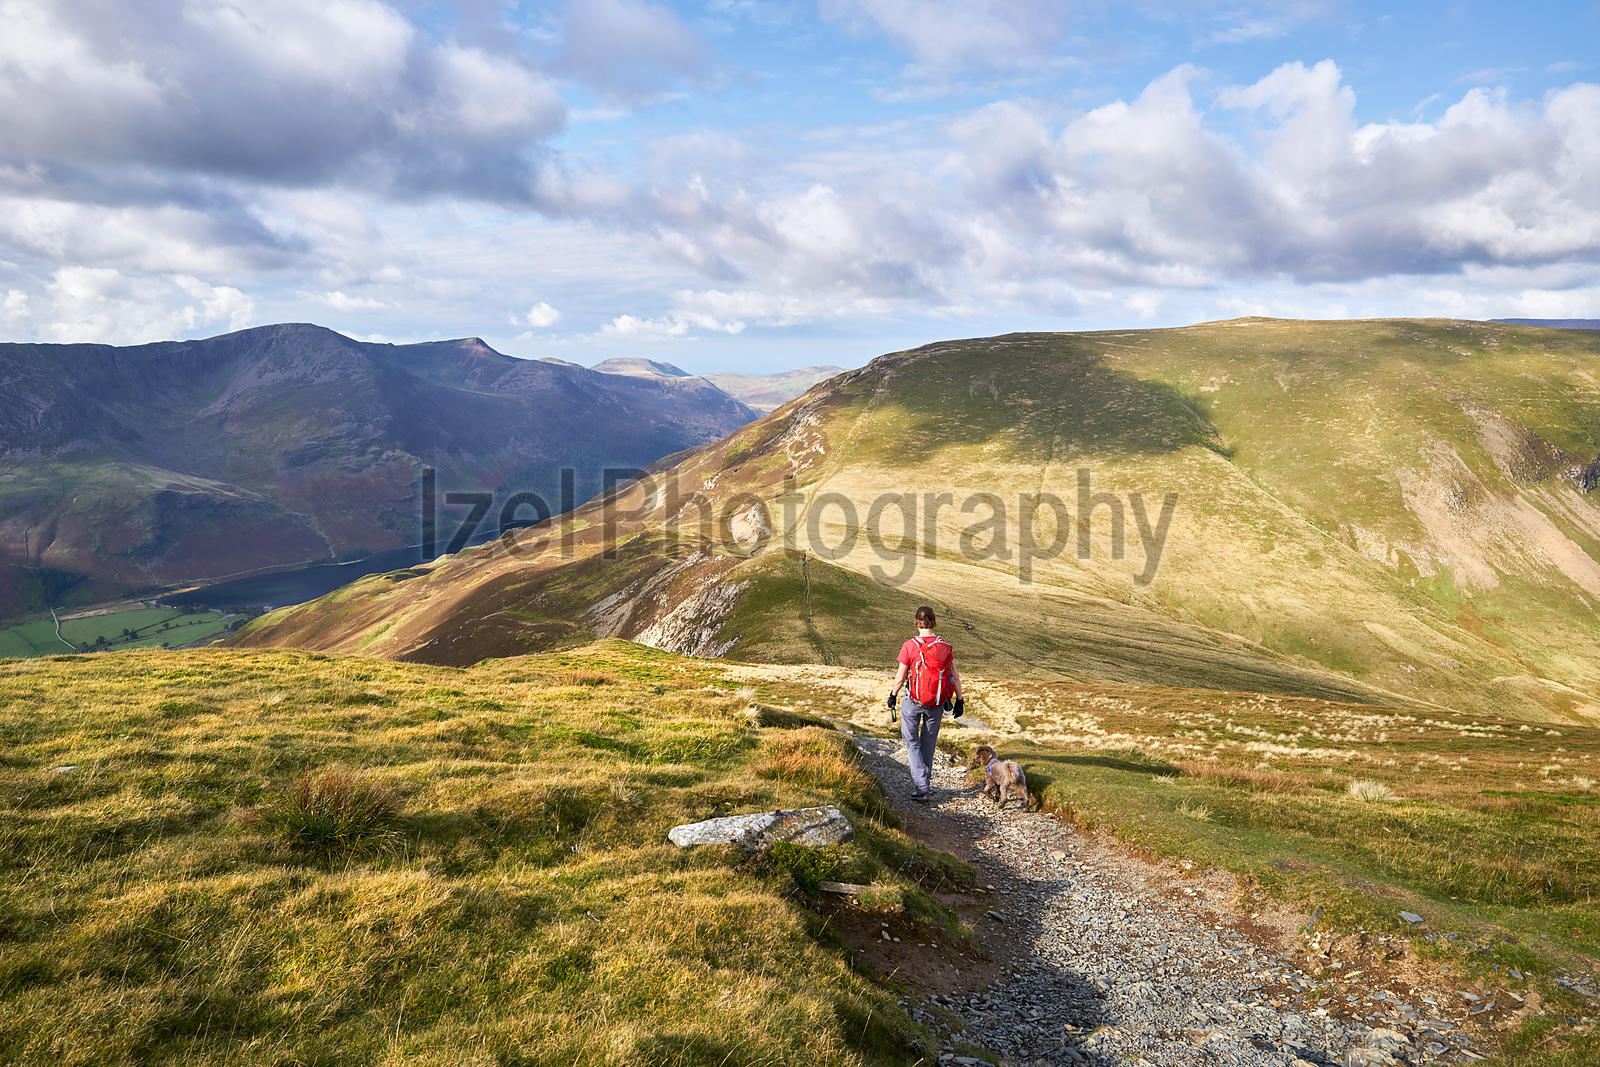 A hiker descending from Hindscarth towards the summit of Robinson in the Lake District, England, UK.